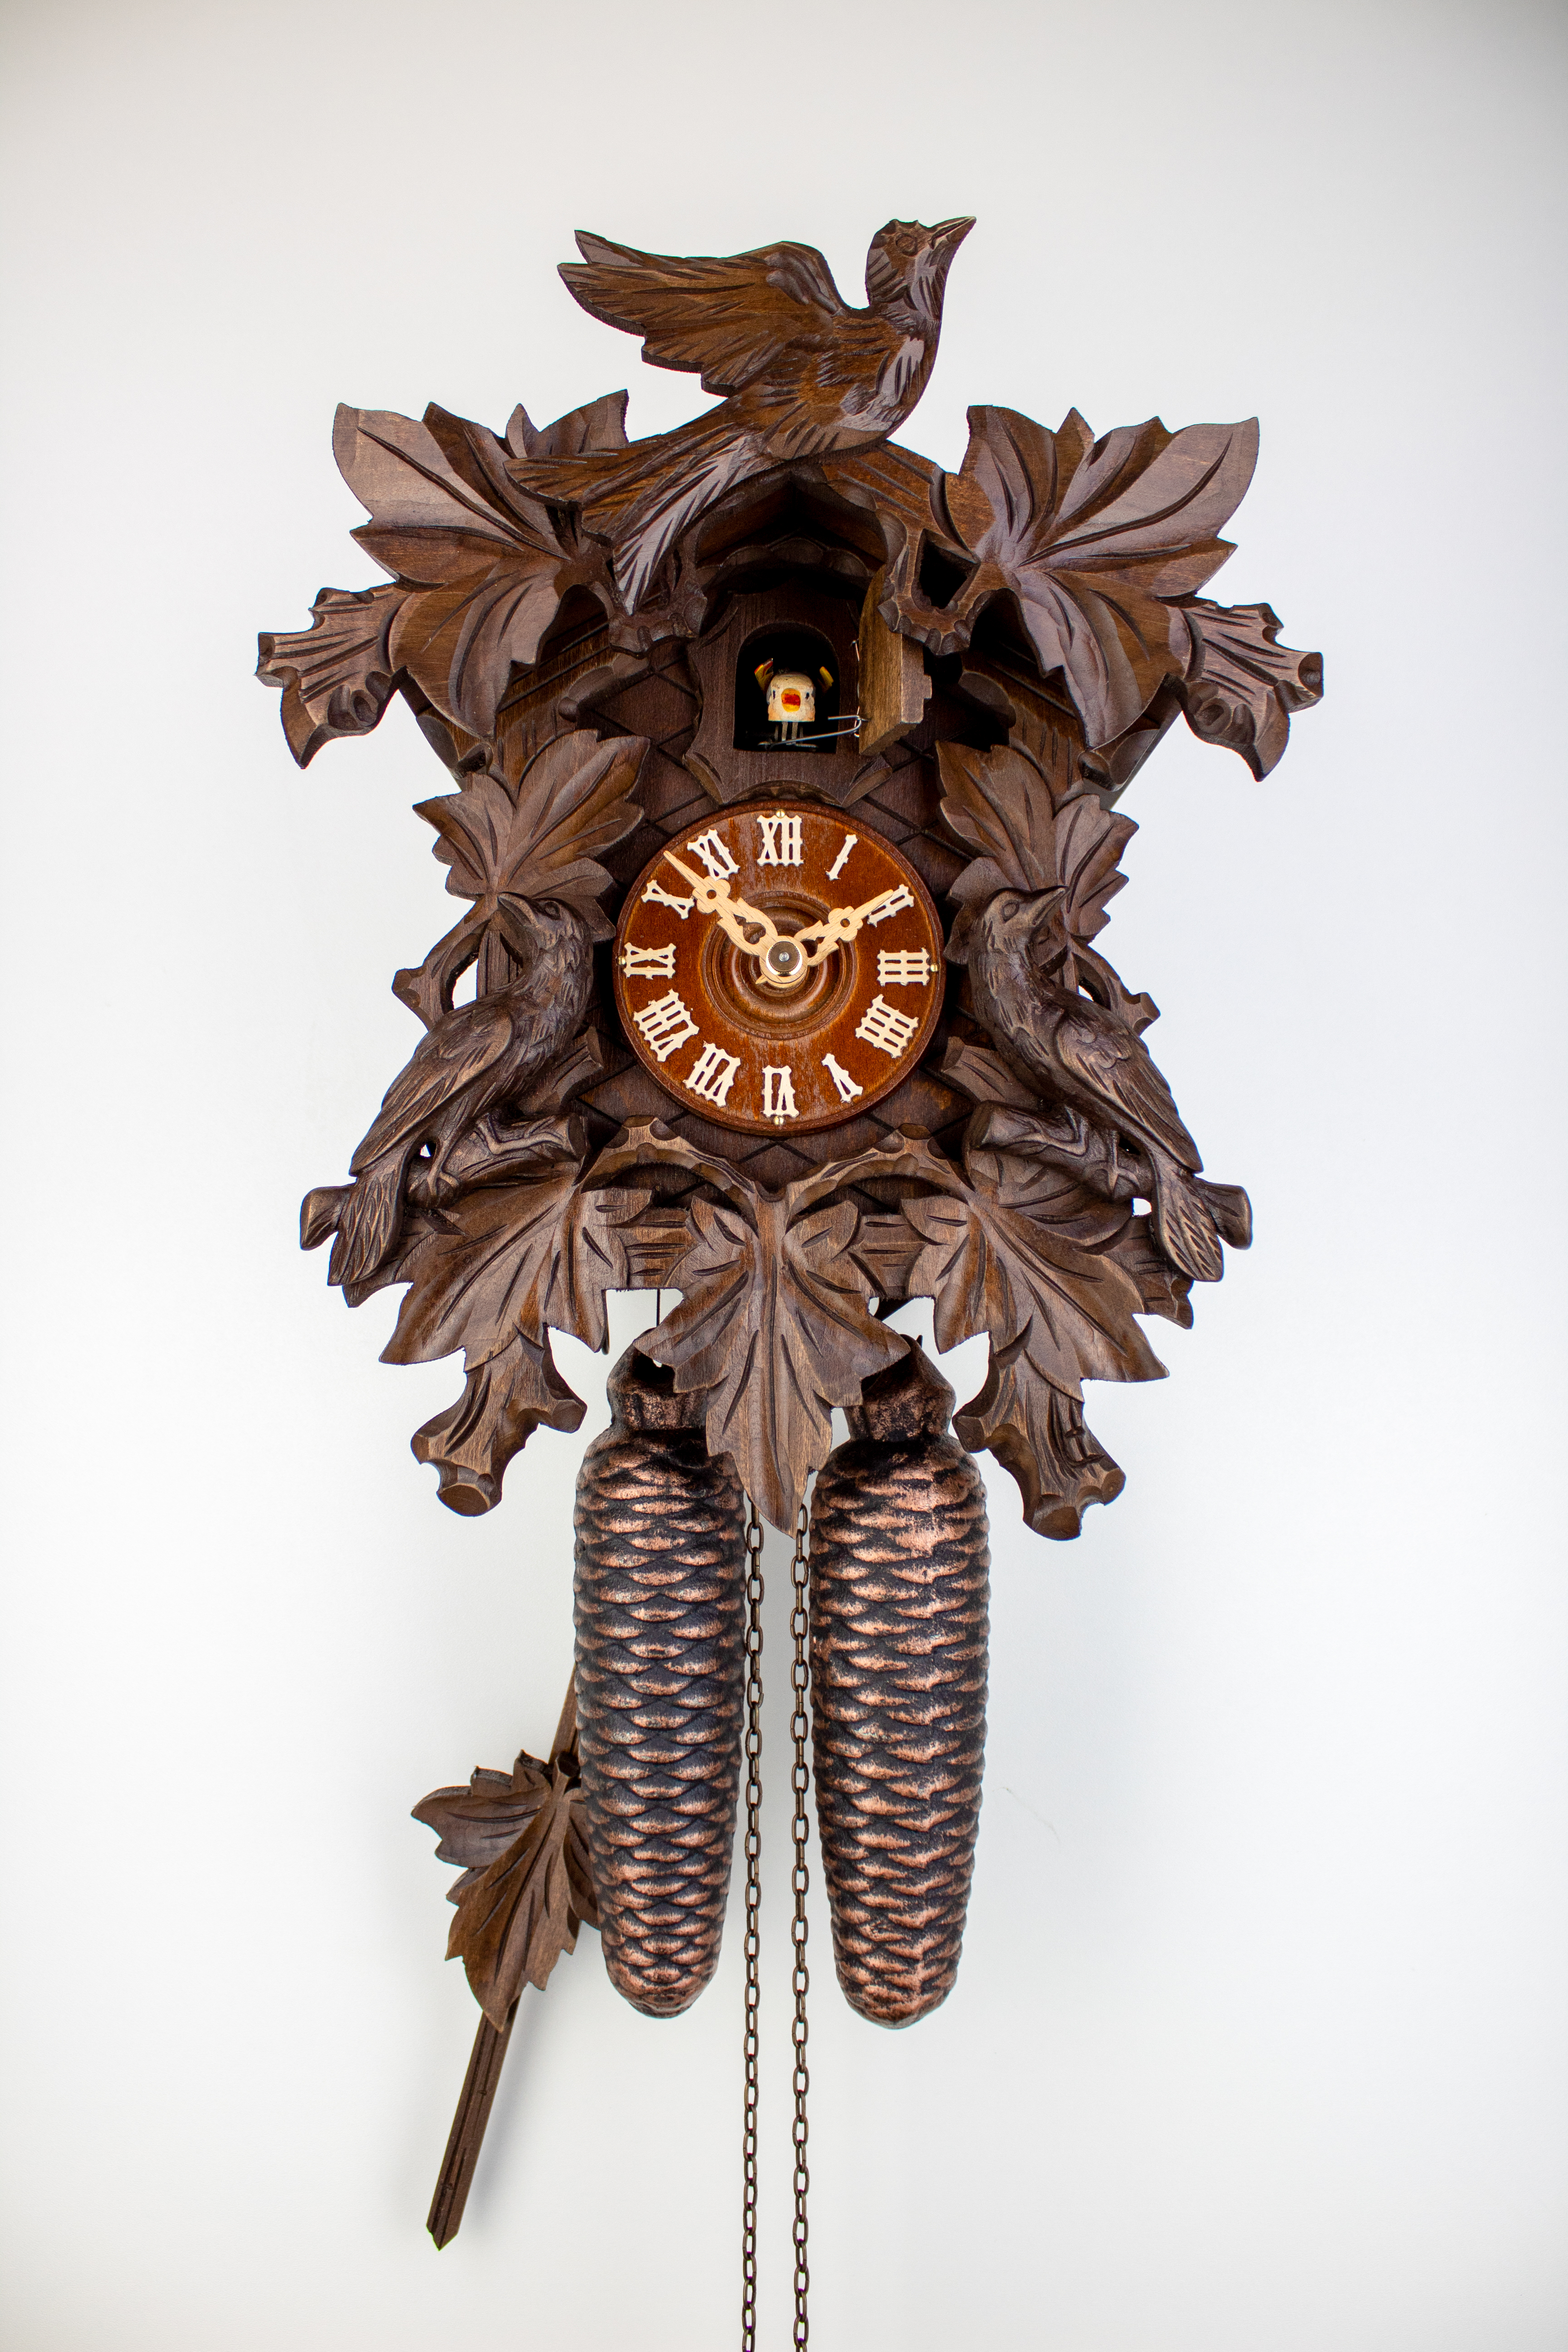 8 Days Cuckoo Clock with cuckoo pair and vine leaves and bird